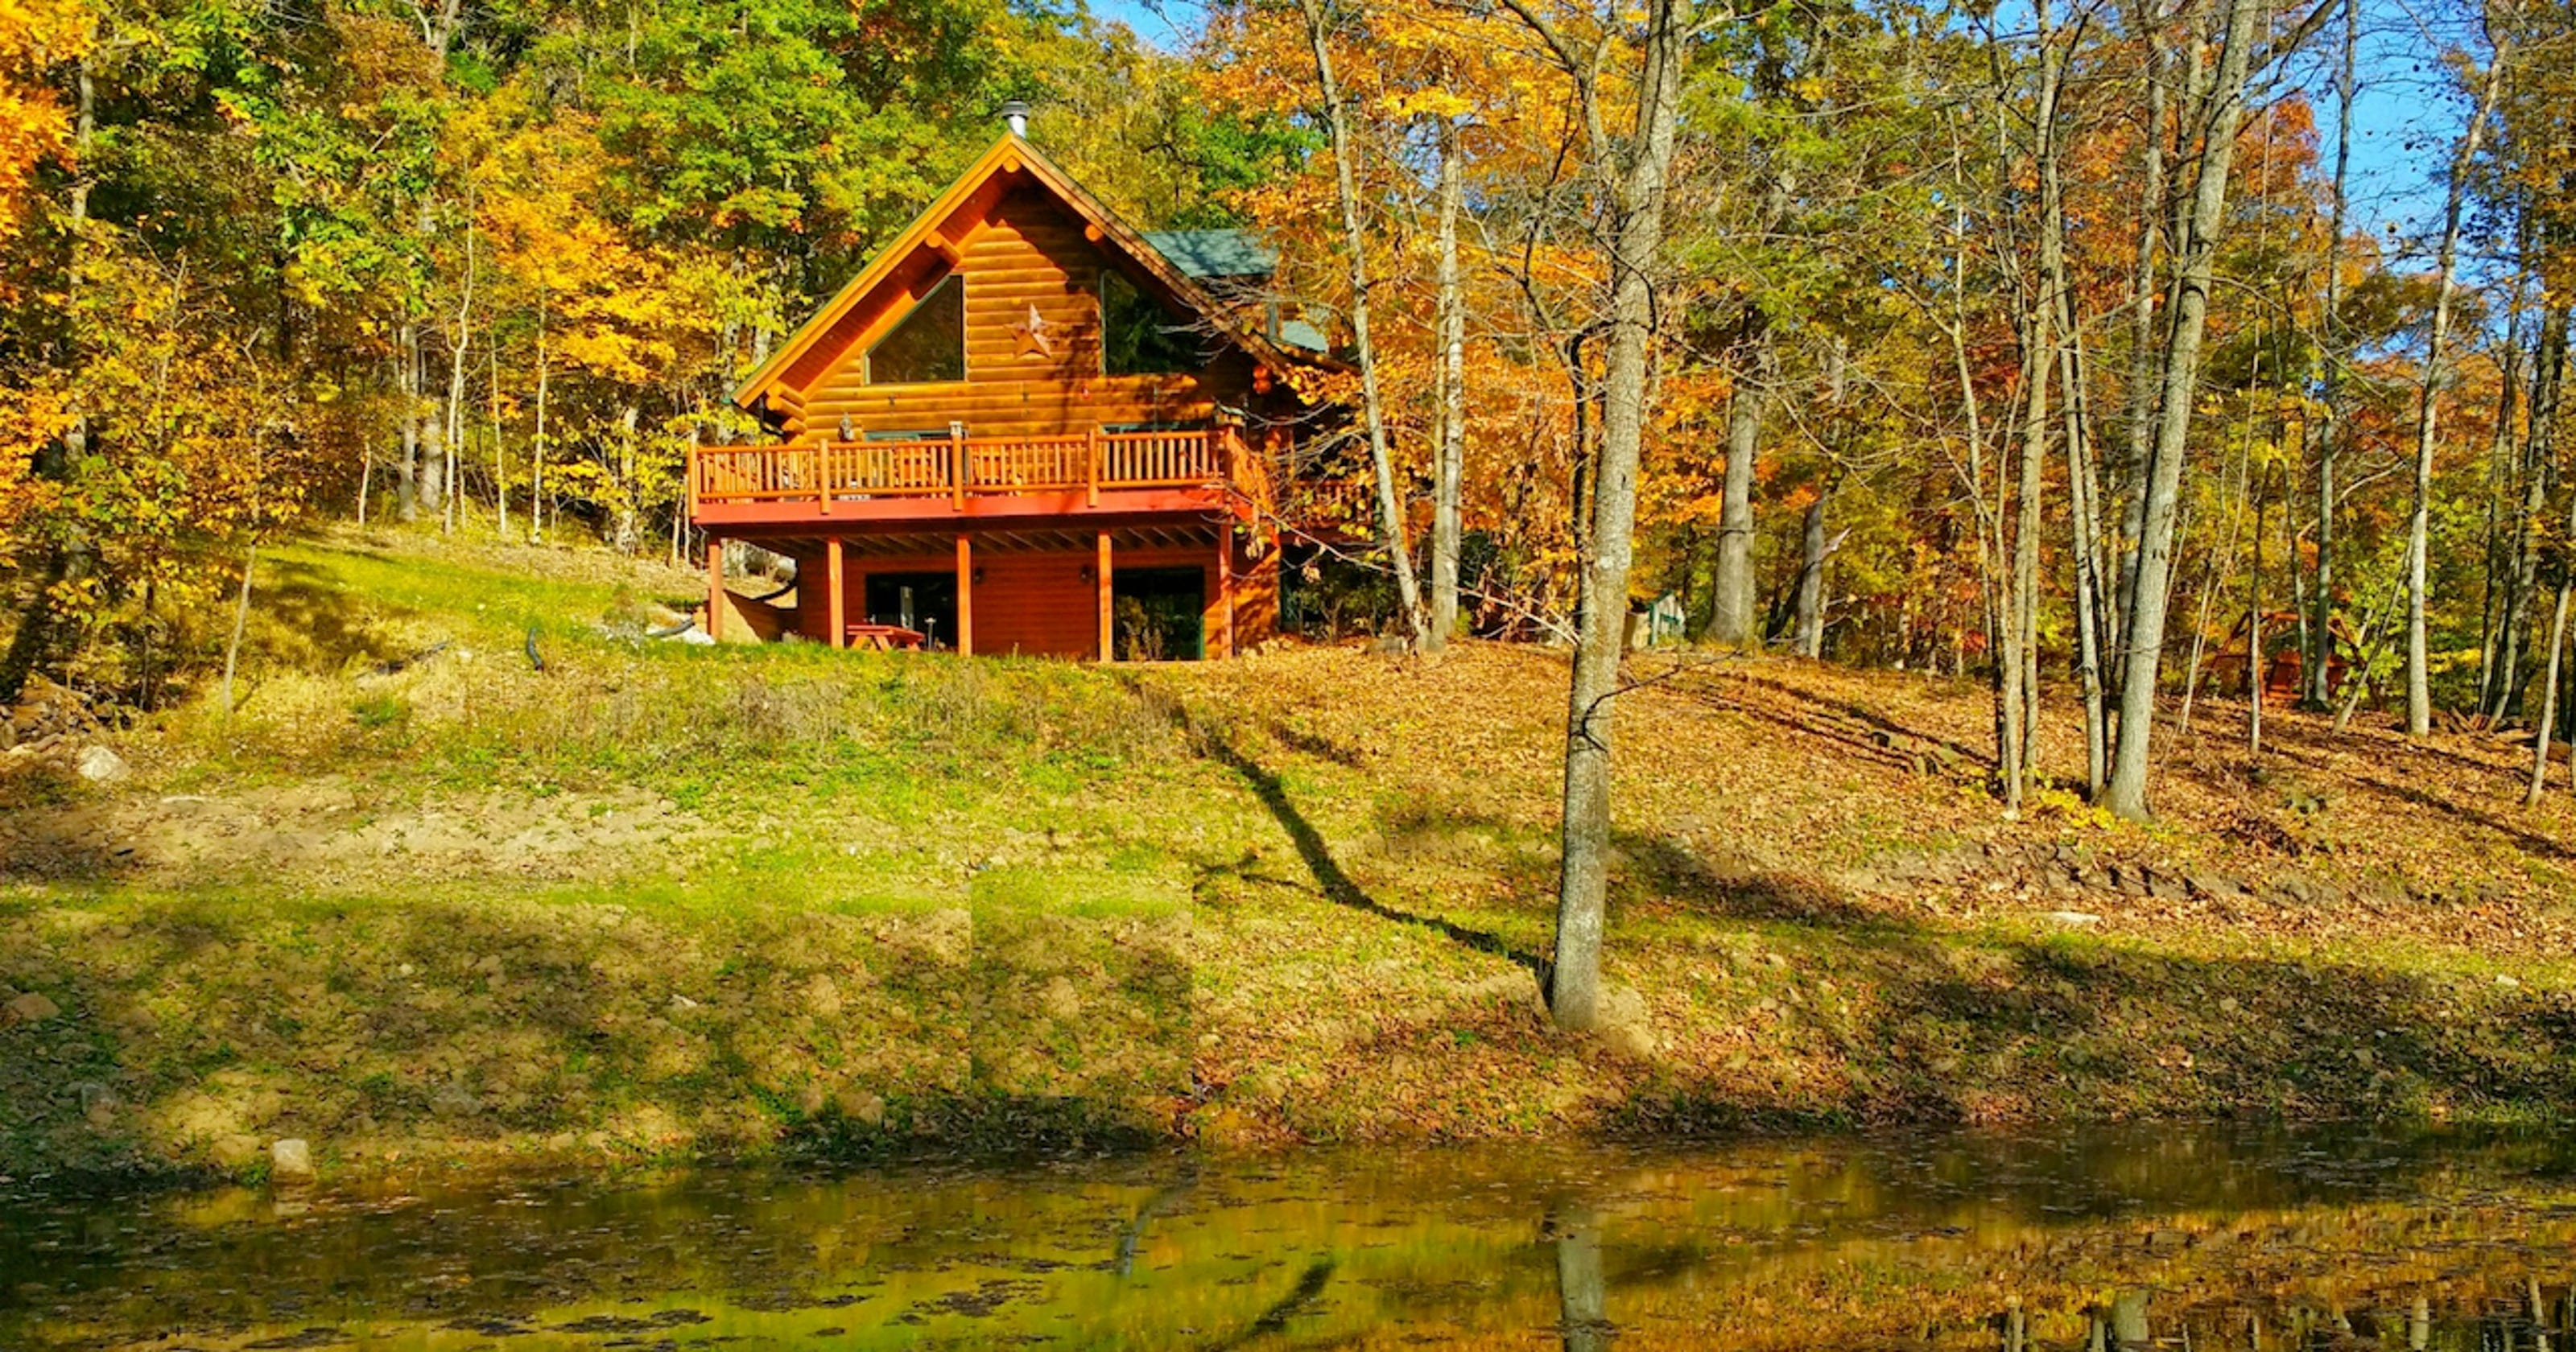 Cabins in Iowa: 10 places to rent for outdoors views, pools